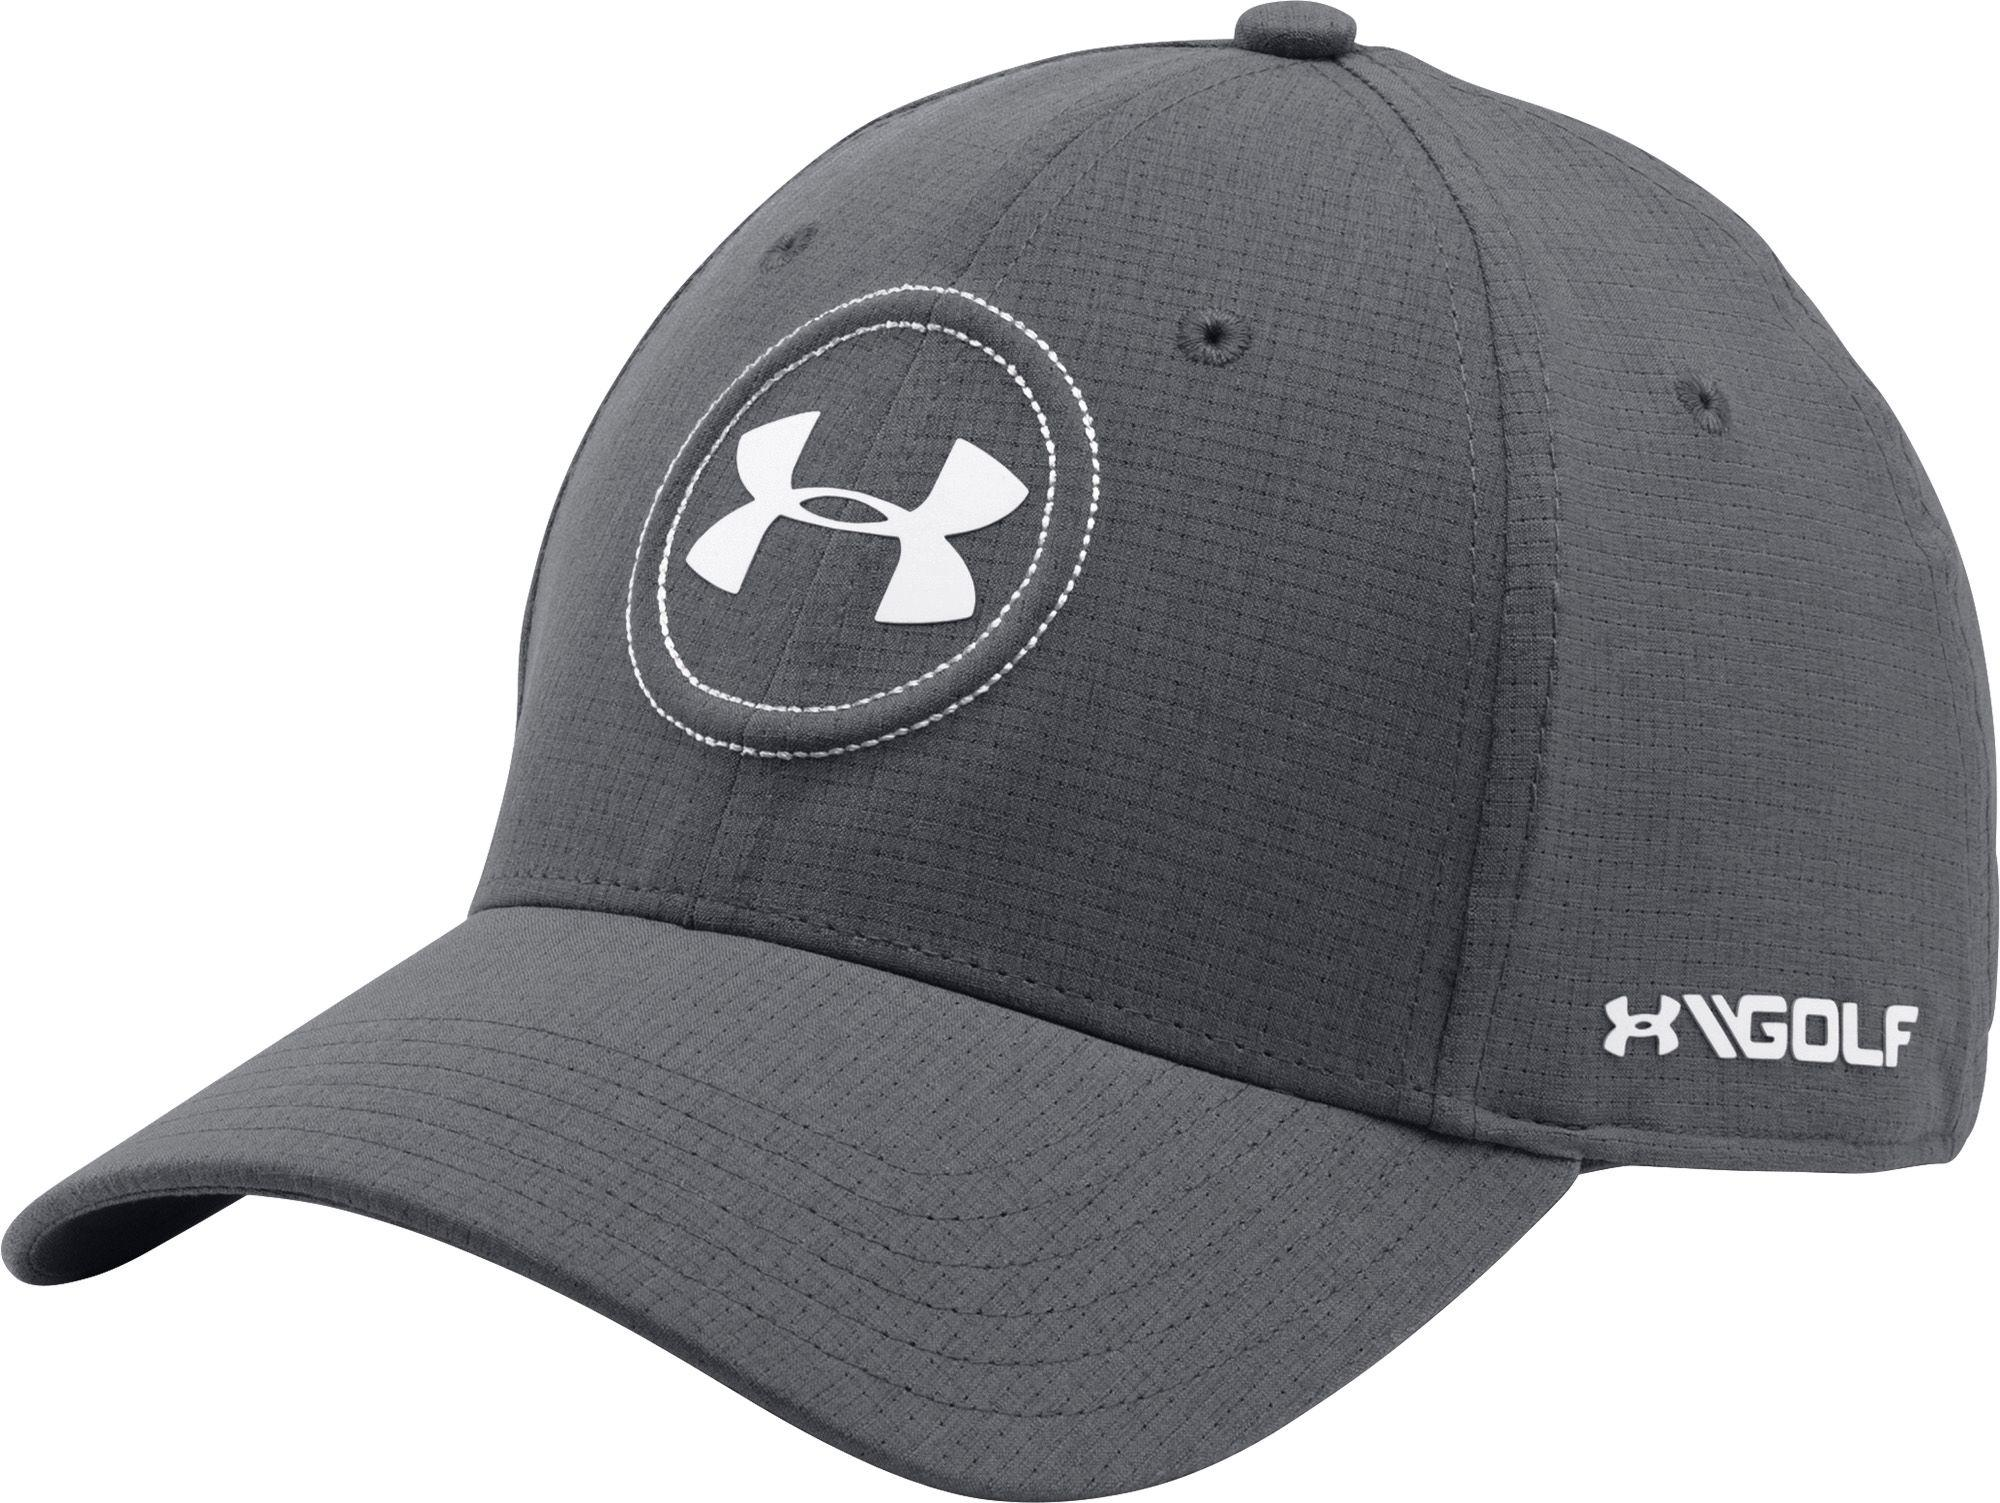 ae4e9b25011f5b Lyst - Under Armour Jordan Spieth Official Tour Golf Hat in Gray for Men